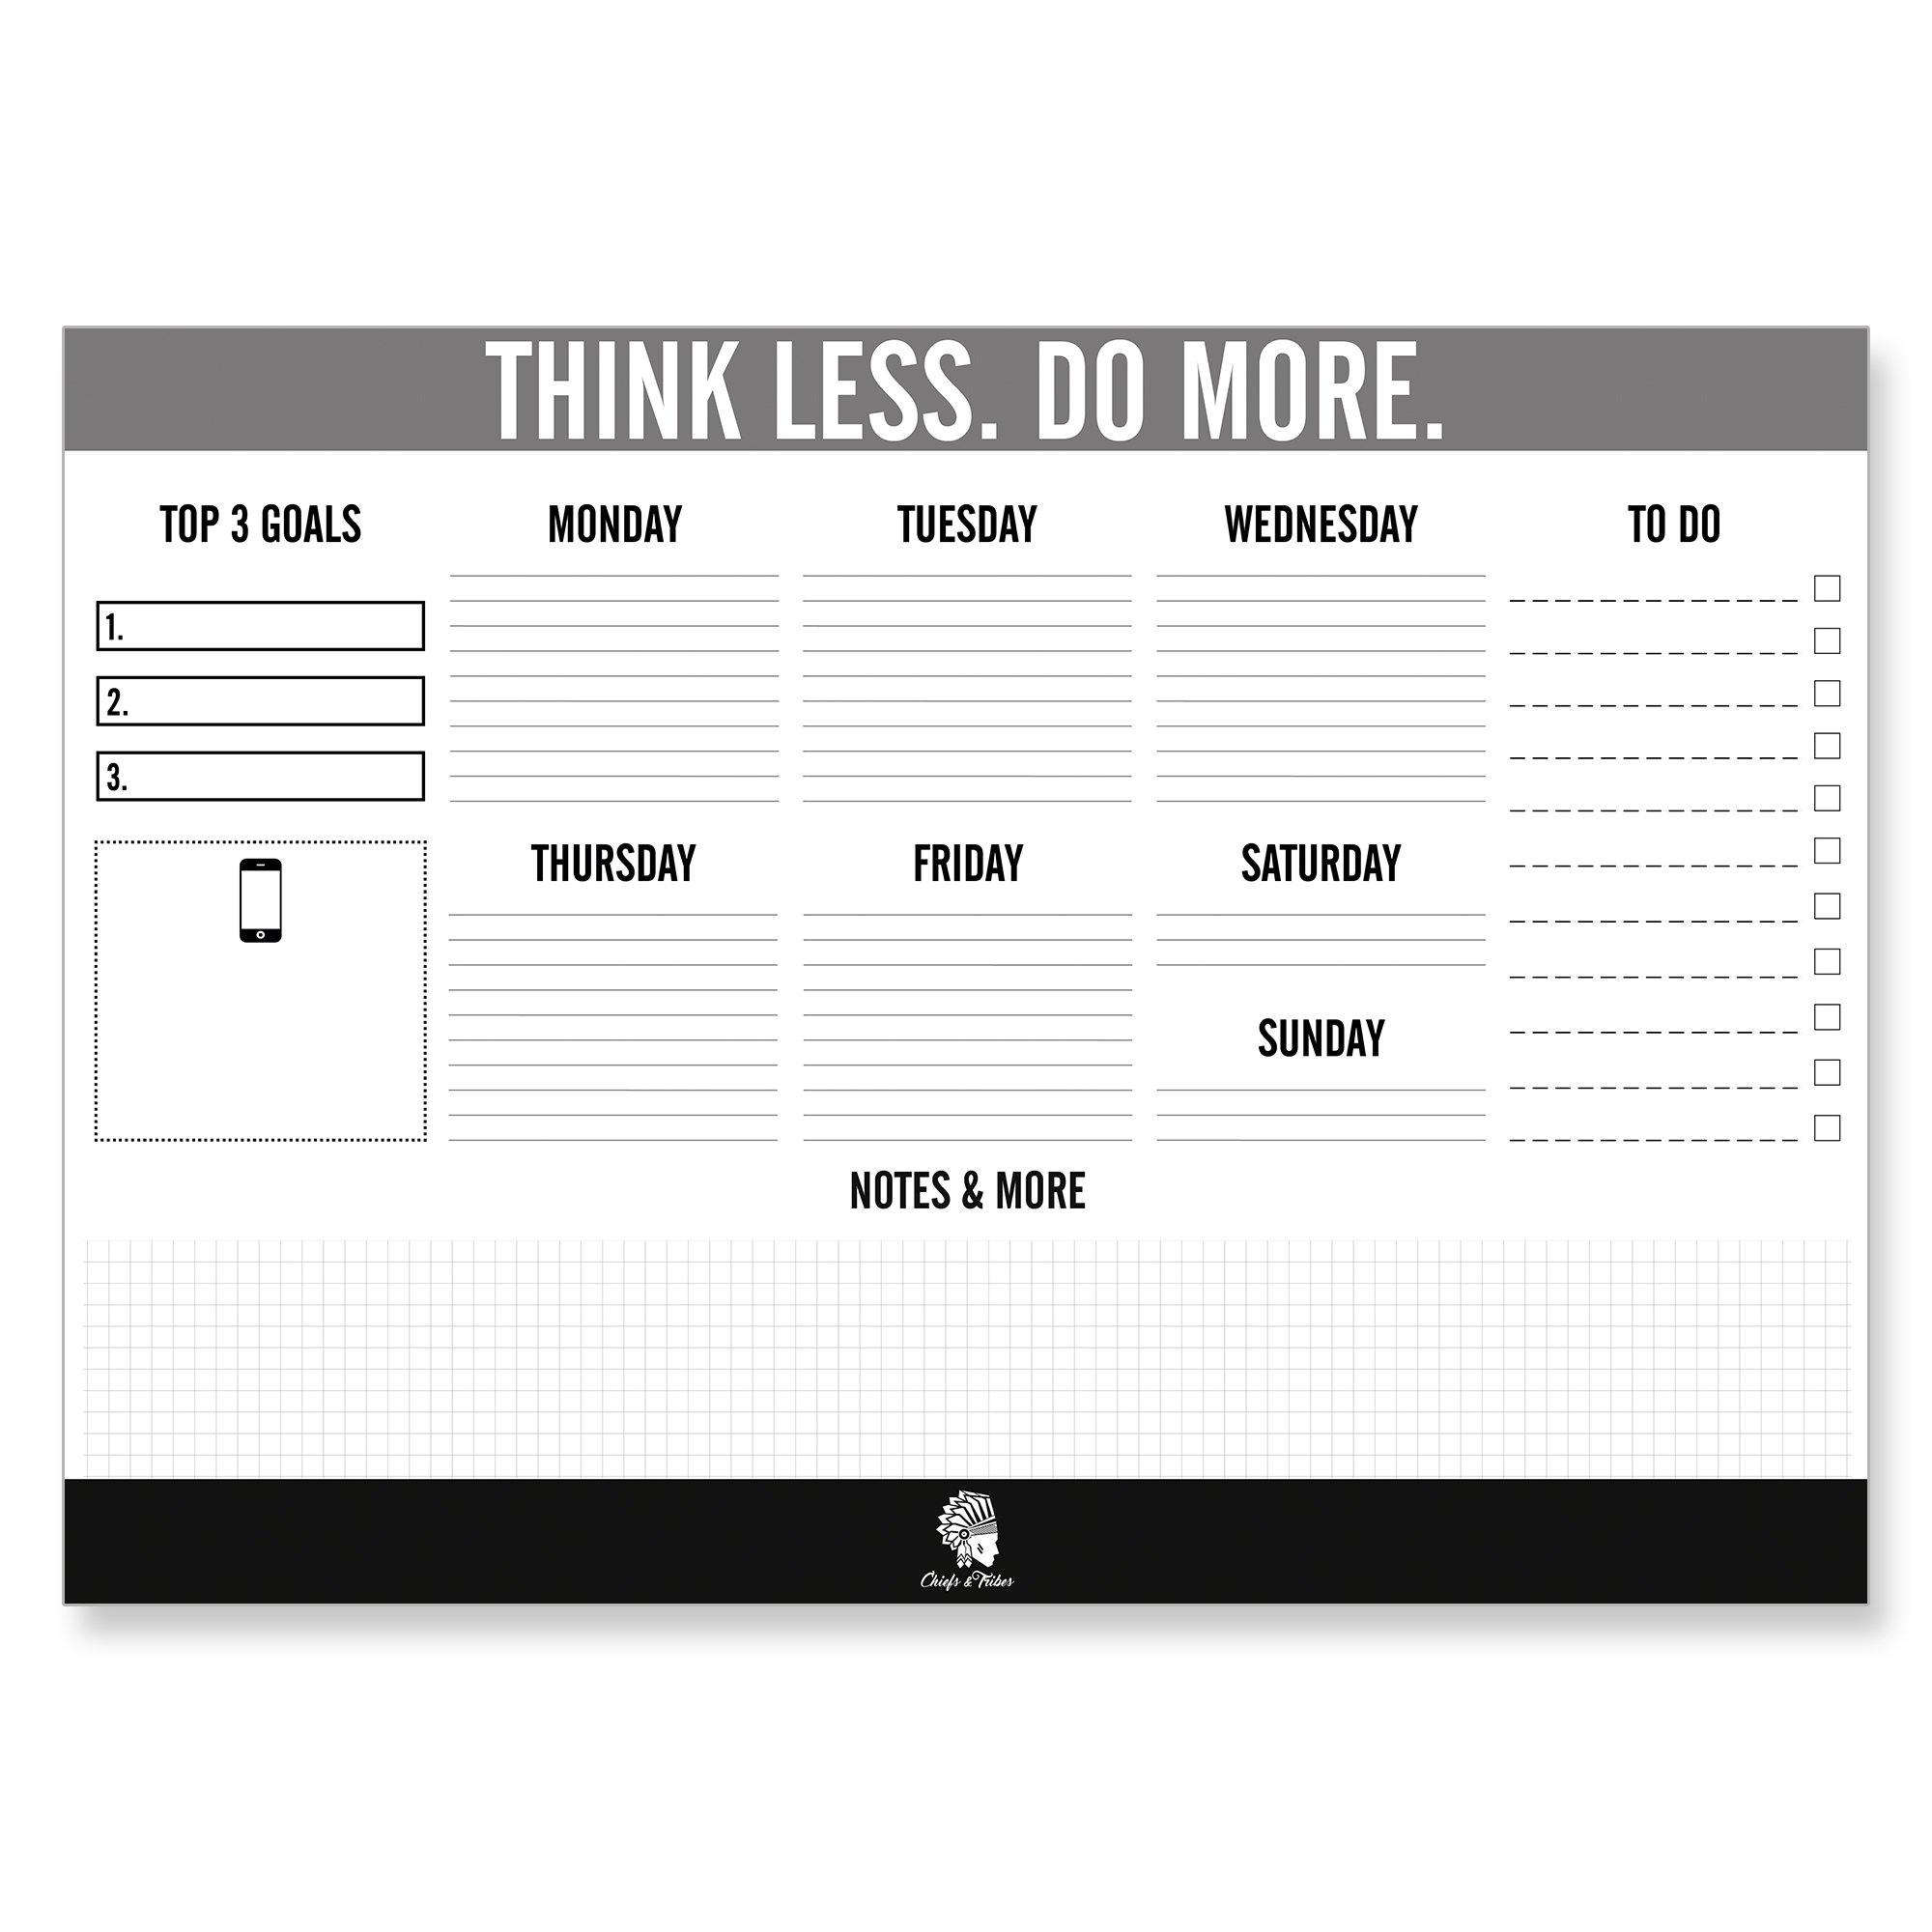 Chiefs & Tribes Desk Pad Calendar for Writing I Paper: White I Tear-Off Sheets I for Dates & Notes I Daily Planner & Weekly Overview I to-Do List 2018